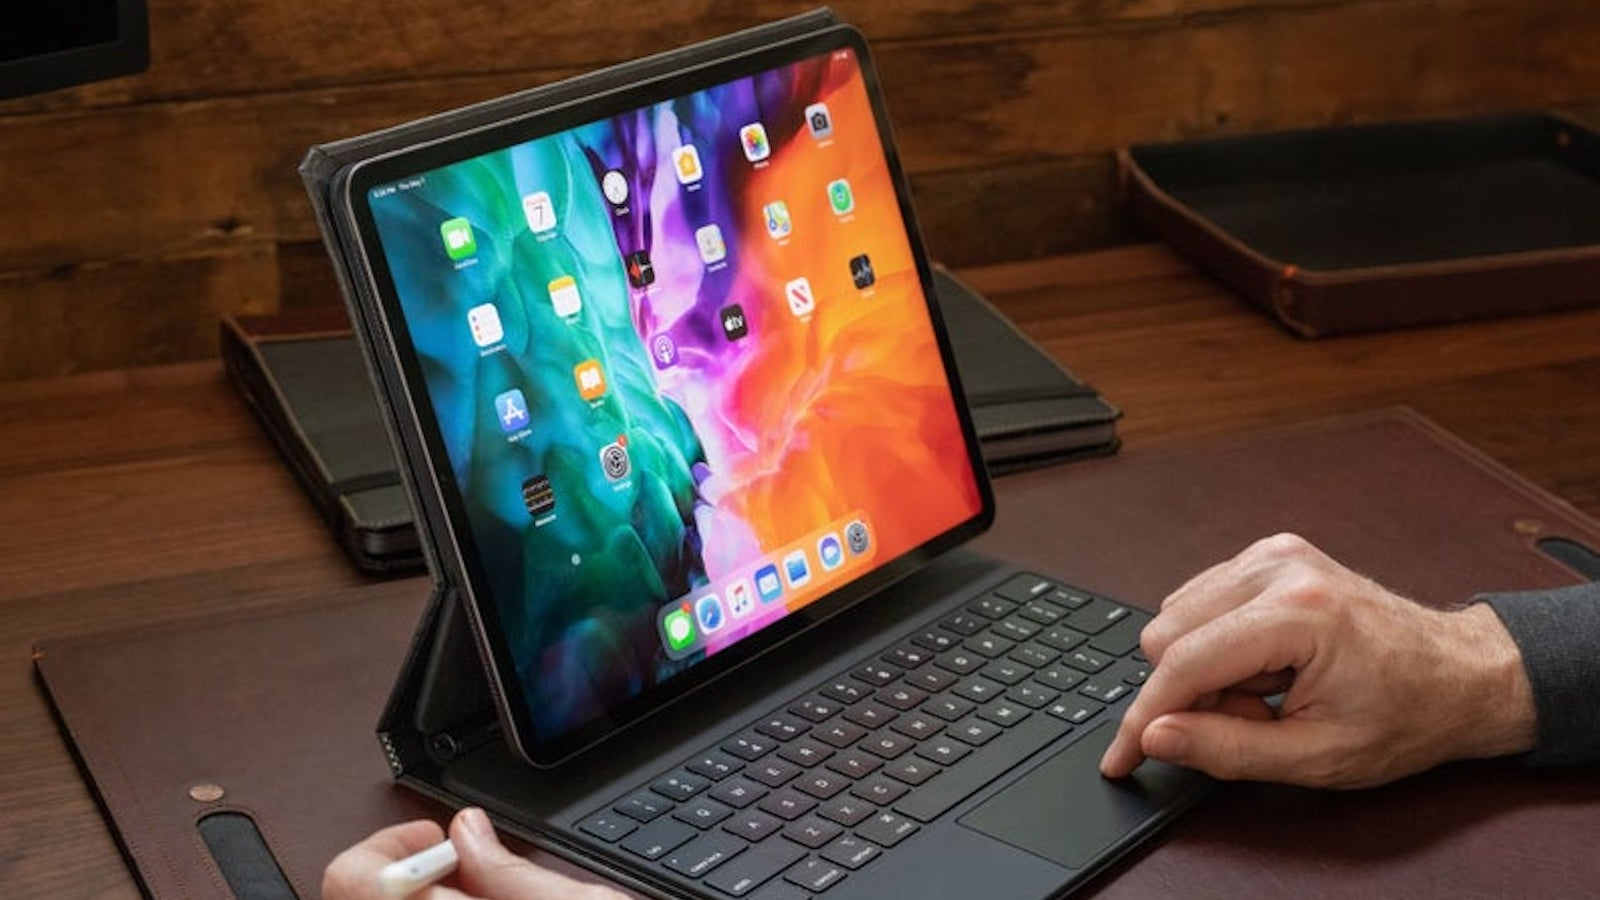 Pad & Quill Copertina Magic iPad Pro Case features a smart keyboard